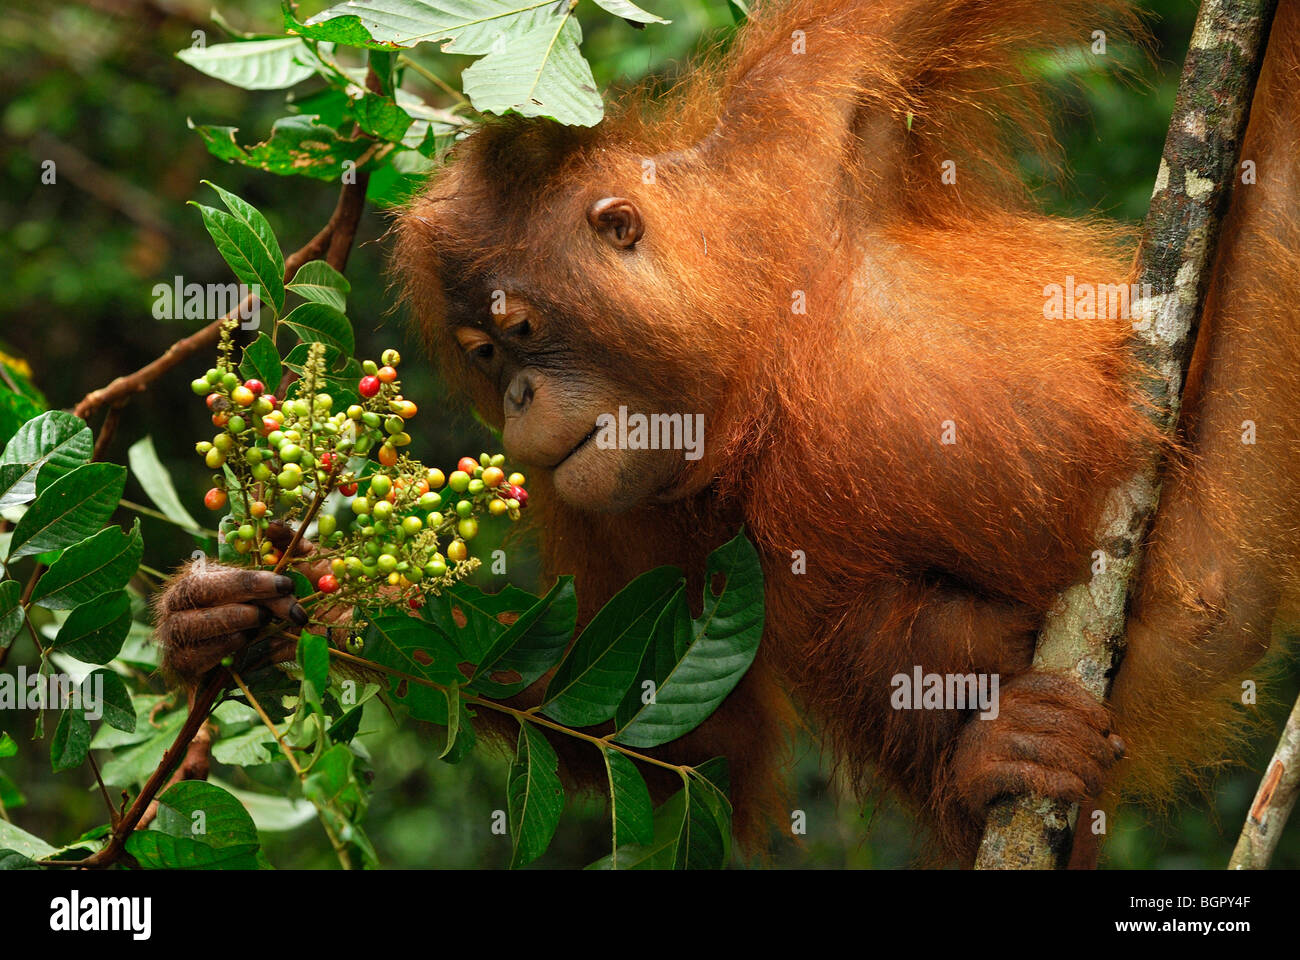 Borneo Orangutan (Pongo pygmaeus), eating fruits, Camp Leaky, Tanjung Puting National Park, Kalimantan, Borneo, - Stock Image